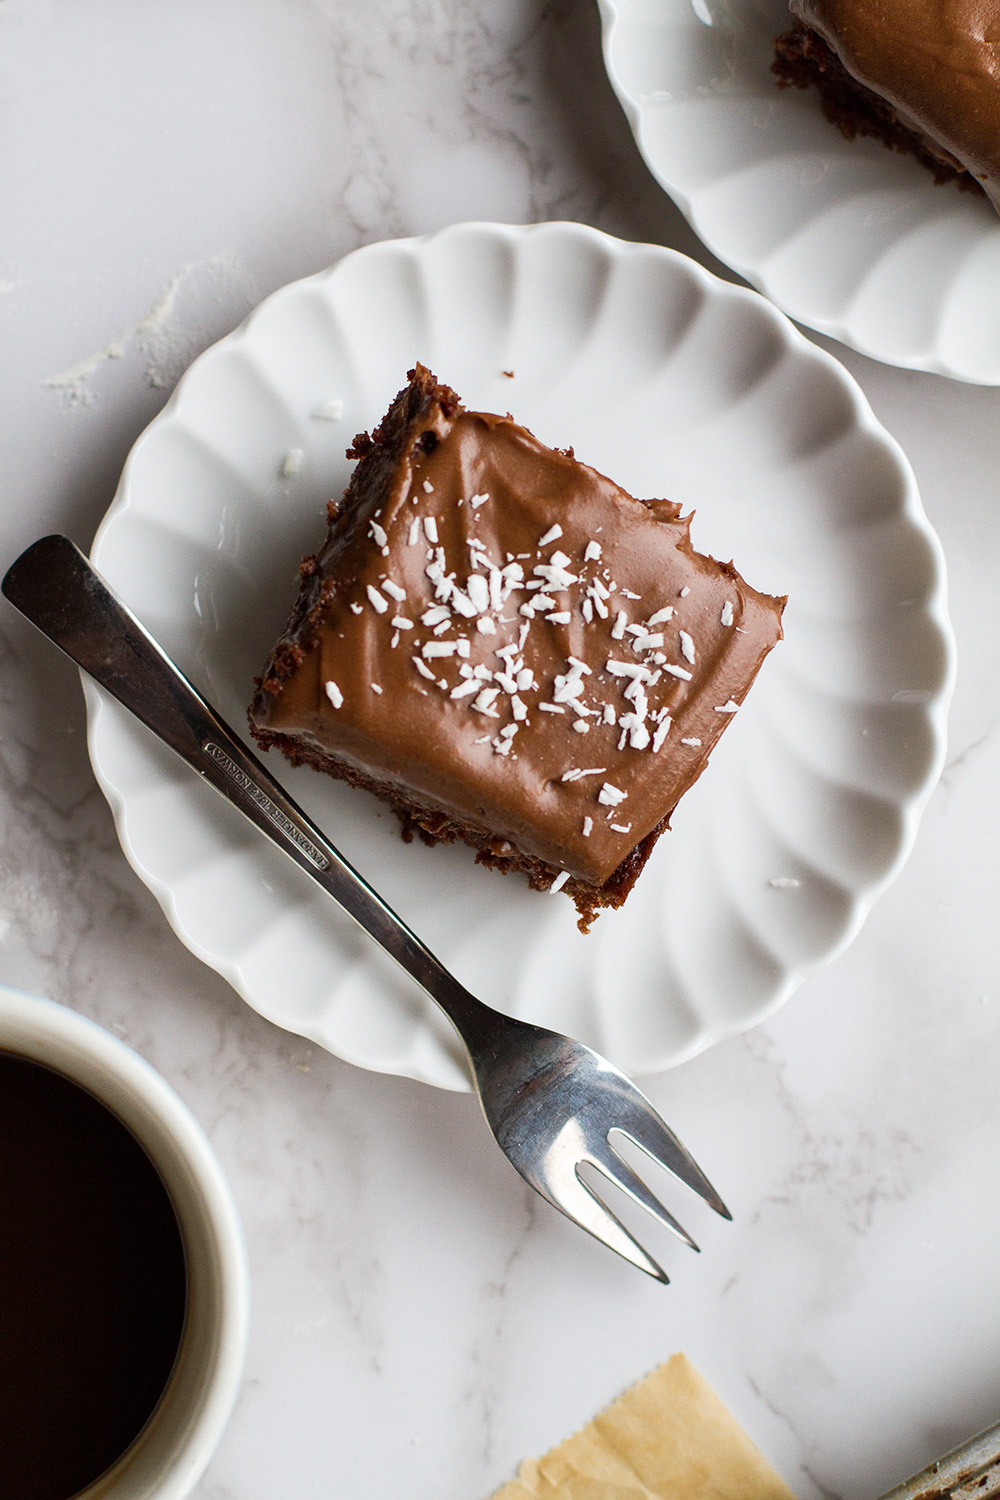 Slice of chocolate cake with shredded coconut as topping.